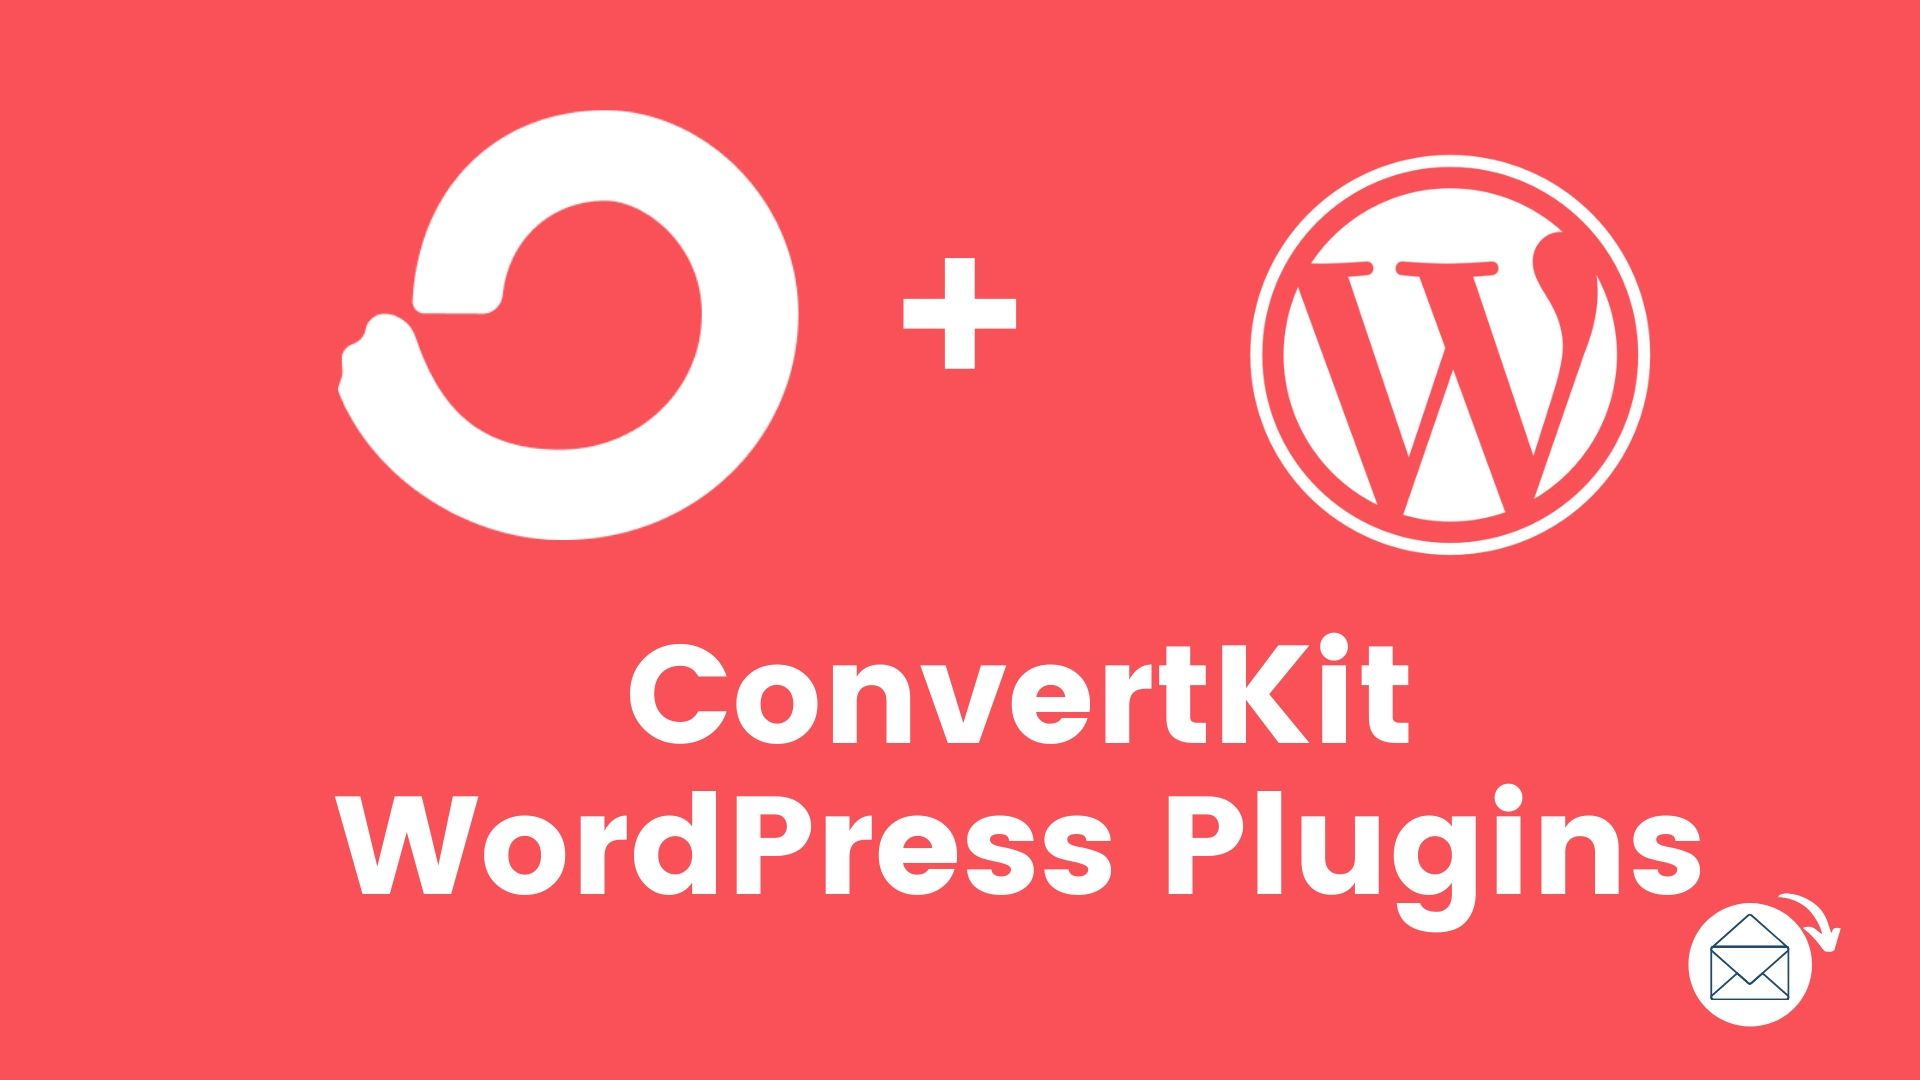 Convertkit Wordpress plugins for email subscriptions